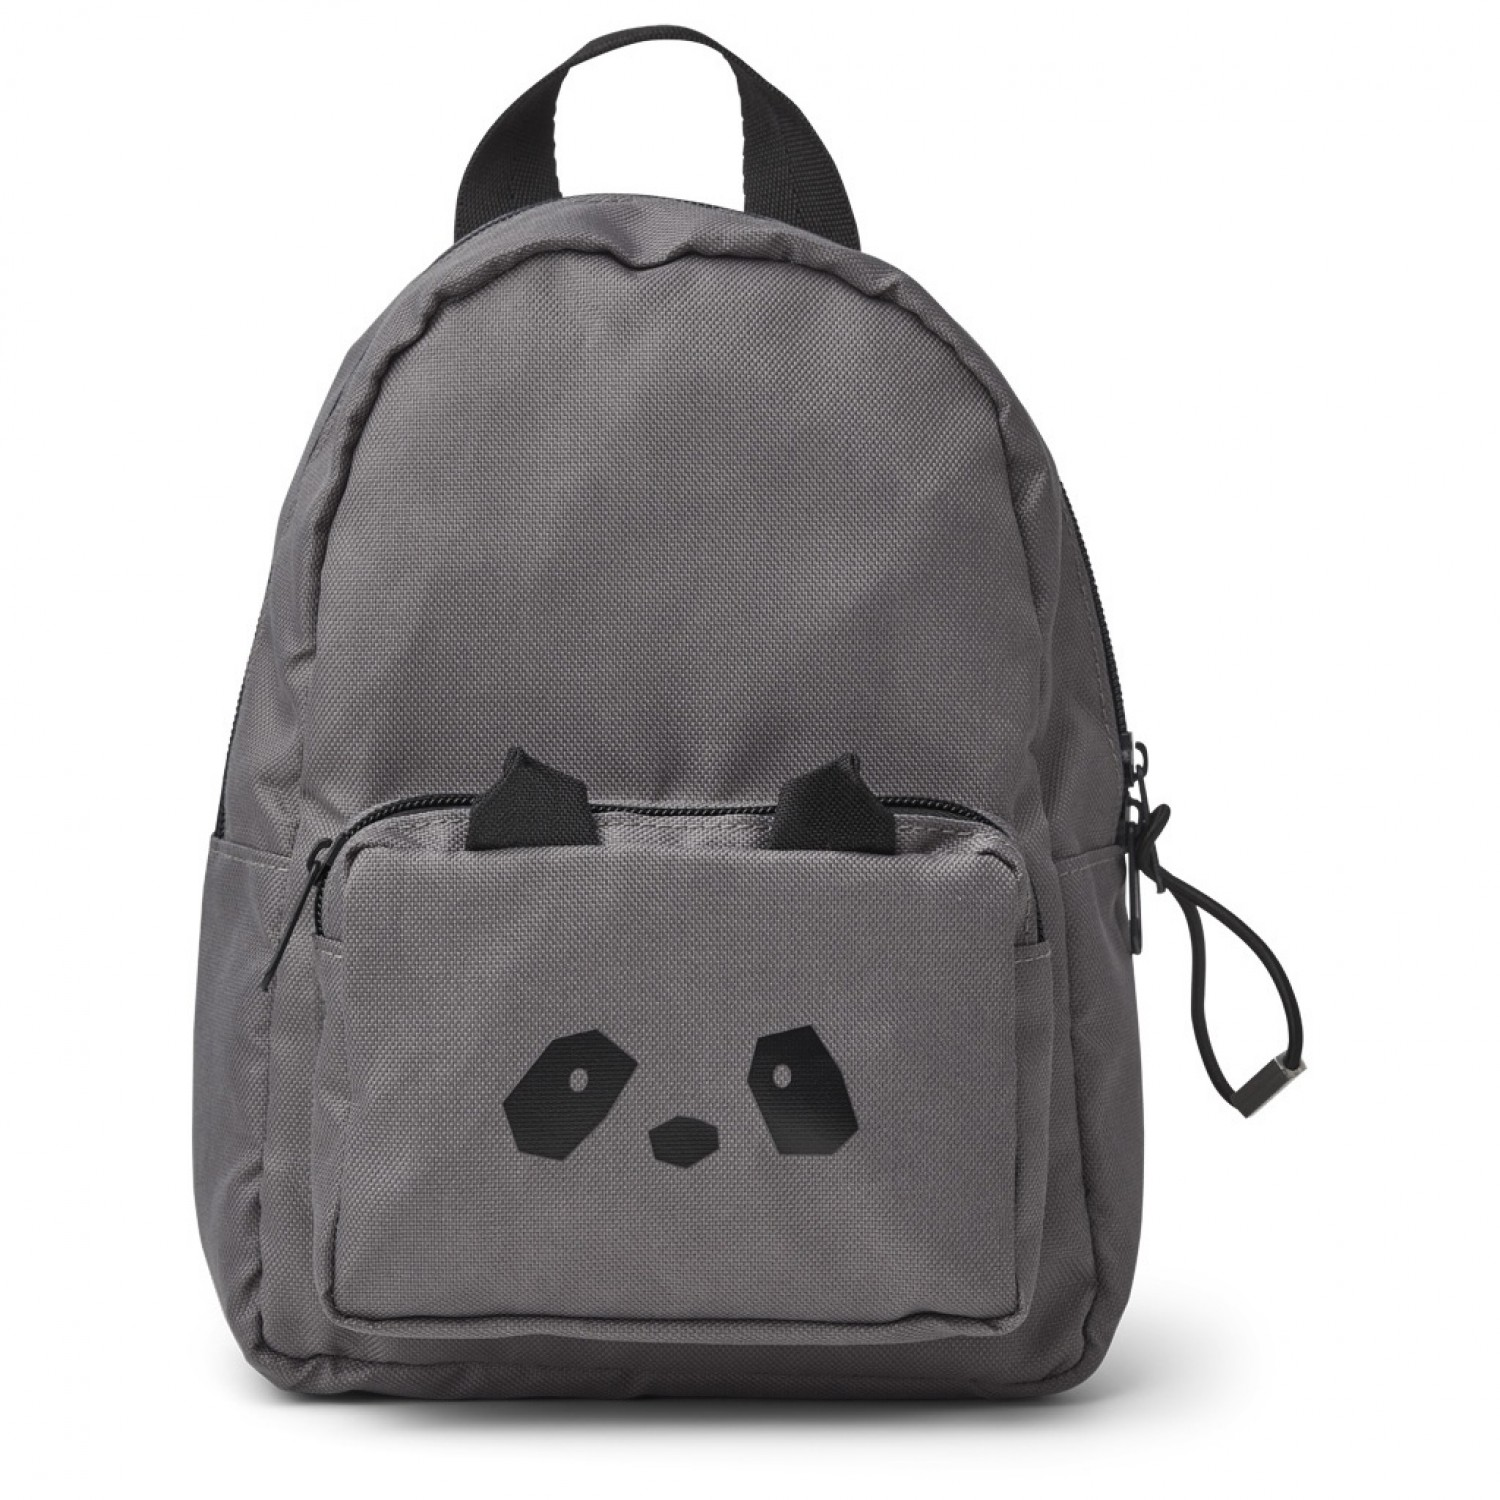 SAXO MINI BACKPACK - PANDA STONE GREY